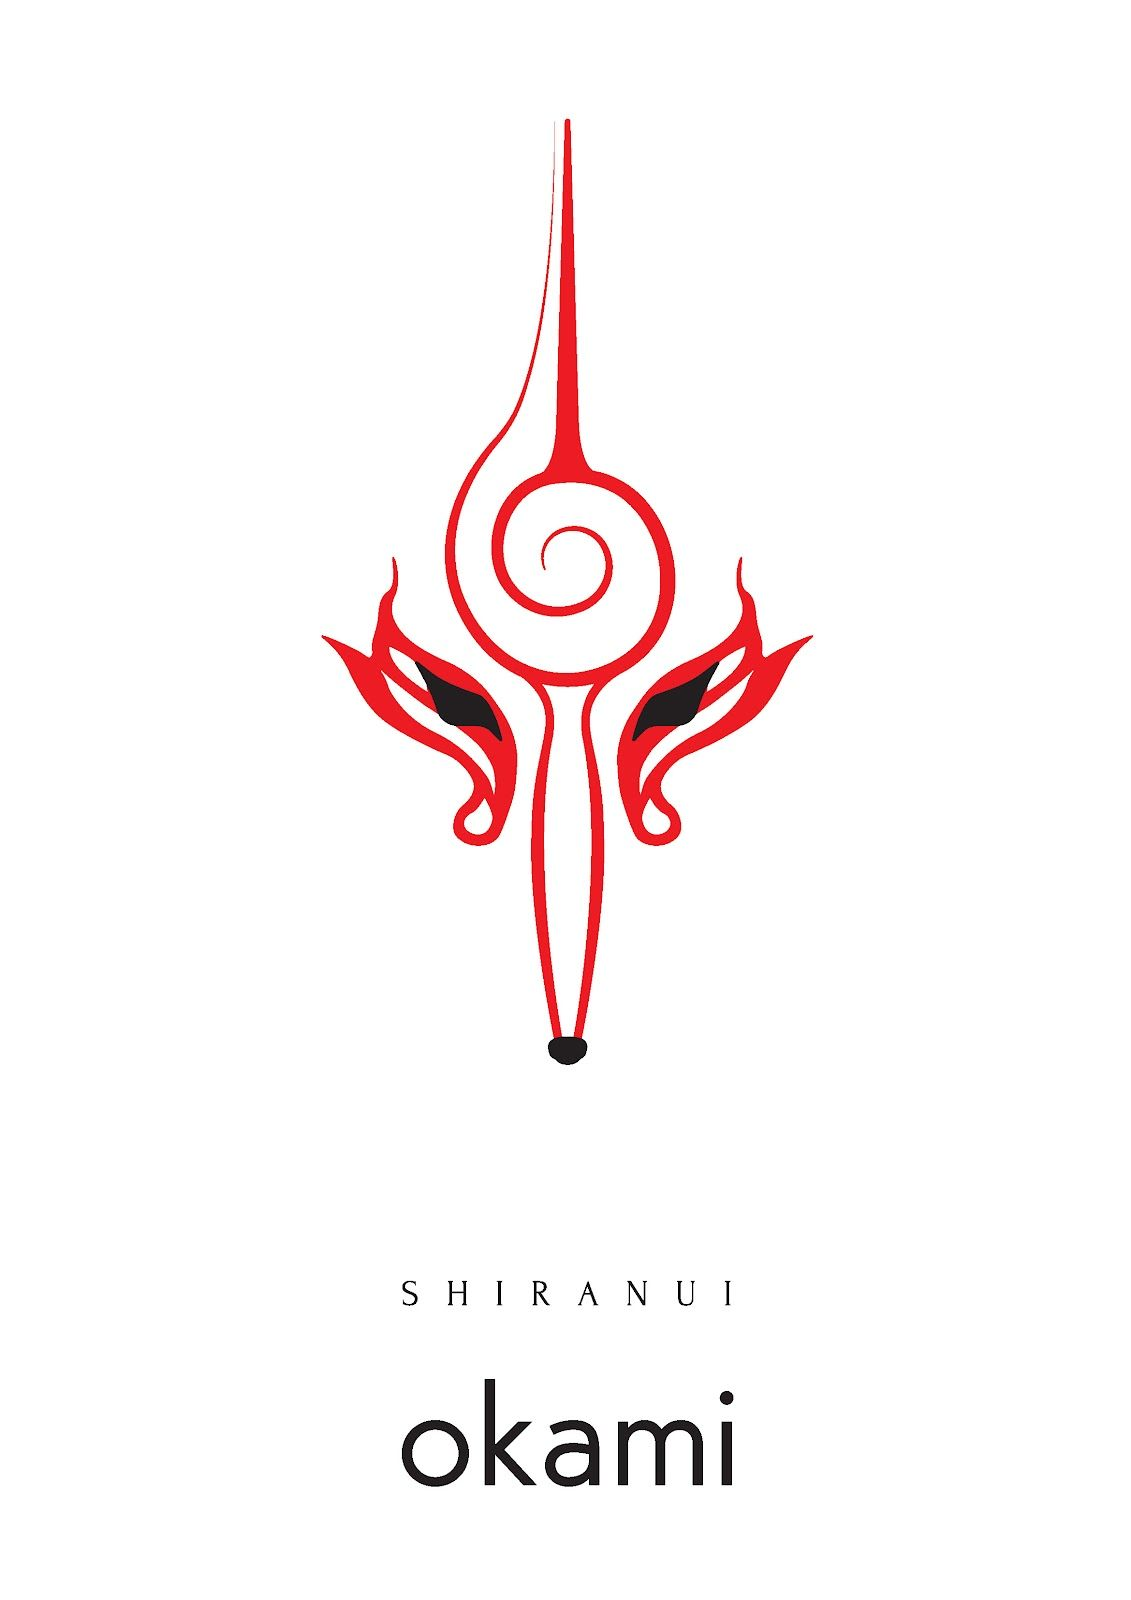 Shiranui Jpg 1131 1600 Okami Amaterasu Inspirational Tattoos